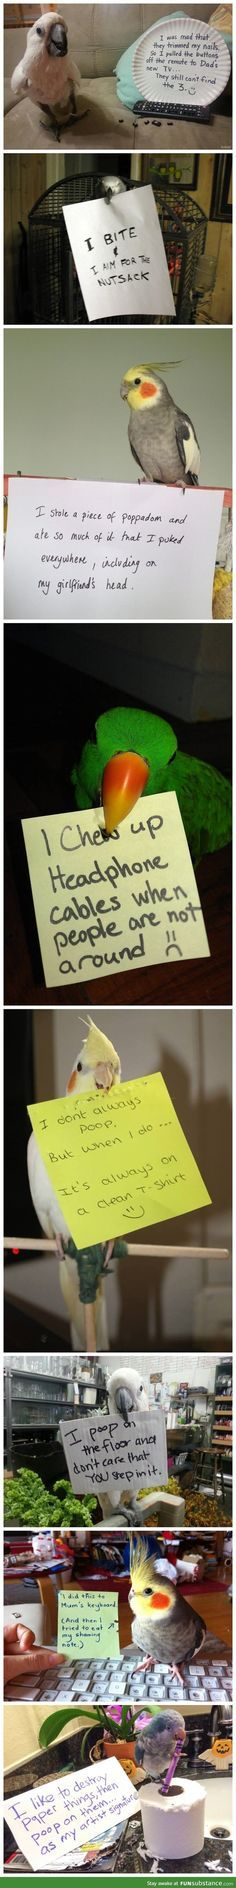 Bird Shaming... tsk tsk tsk! Makes me realize how good my bird is (or how much worse she could be if she put her mind to it)!